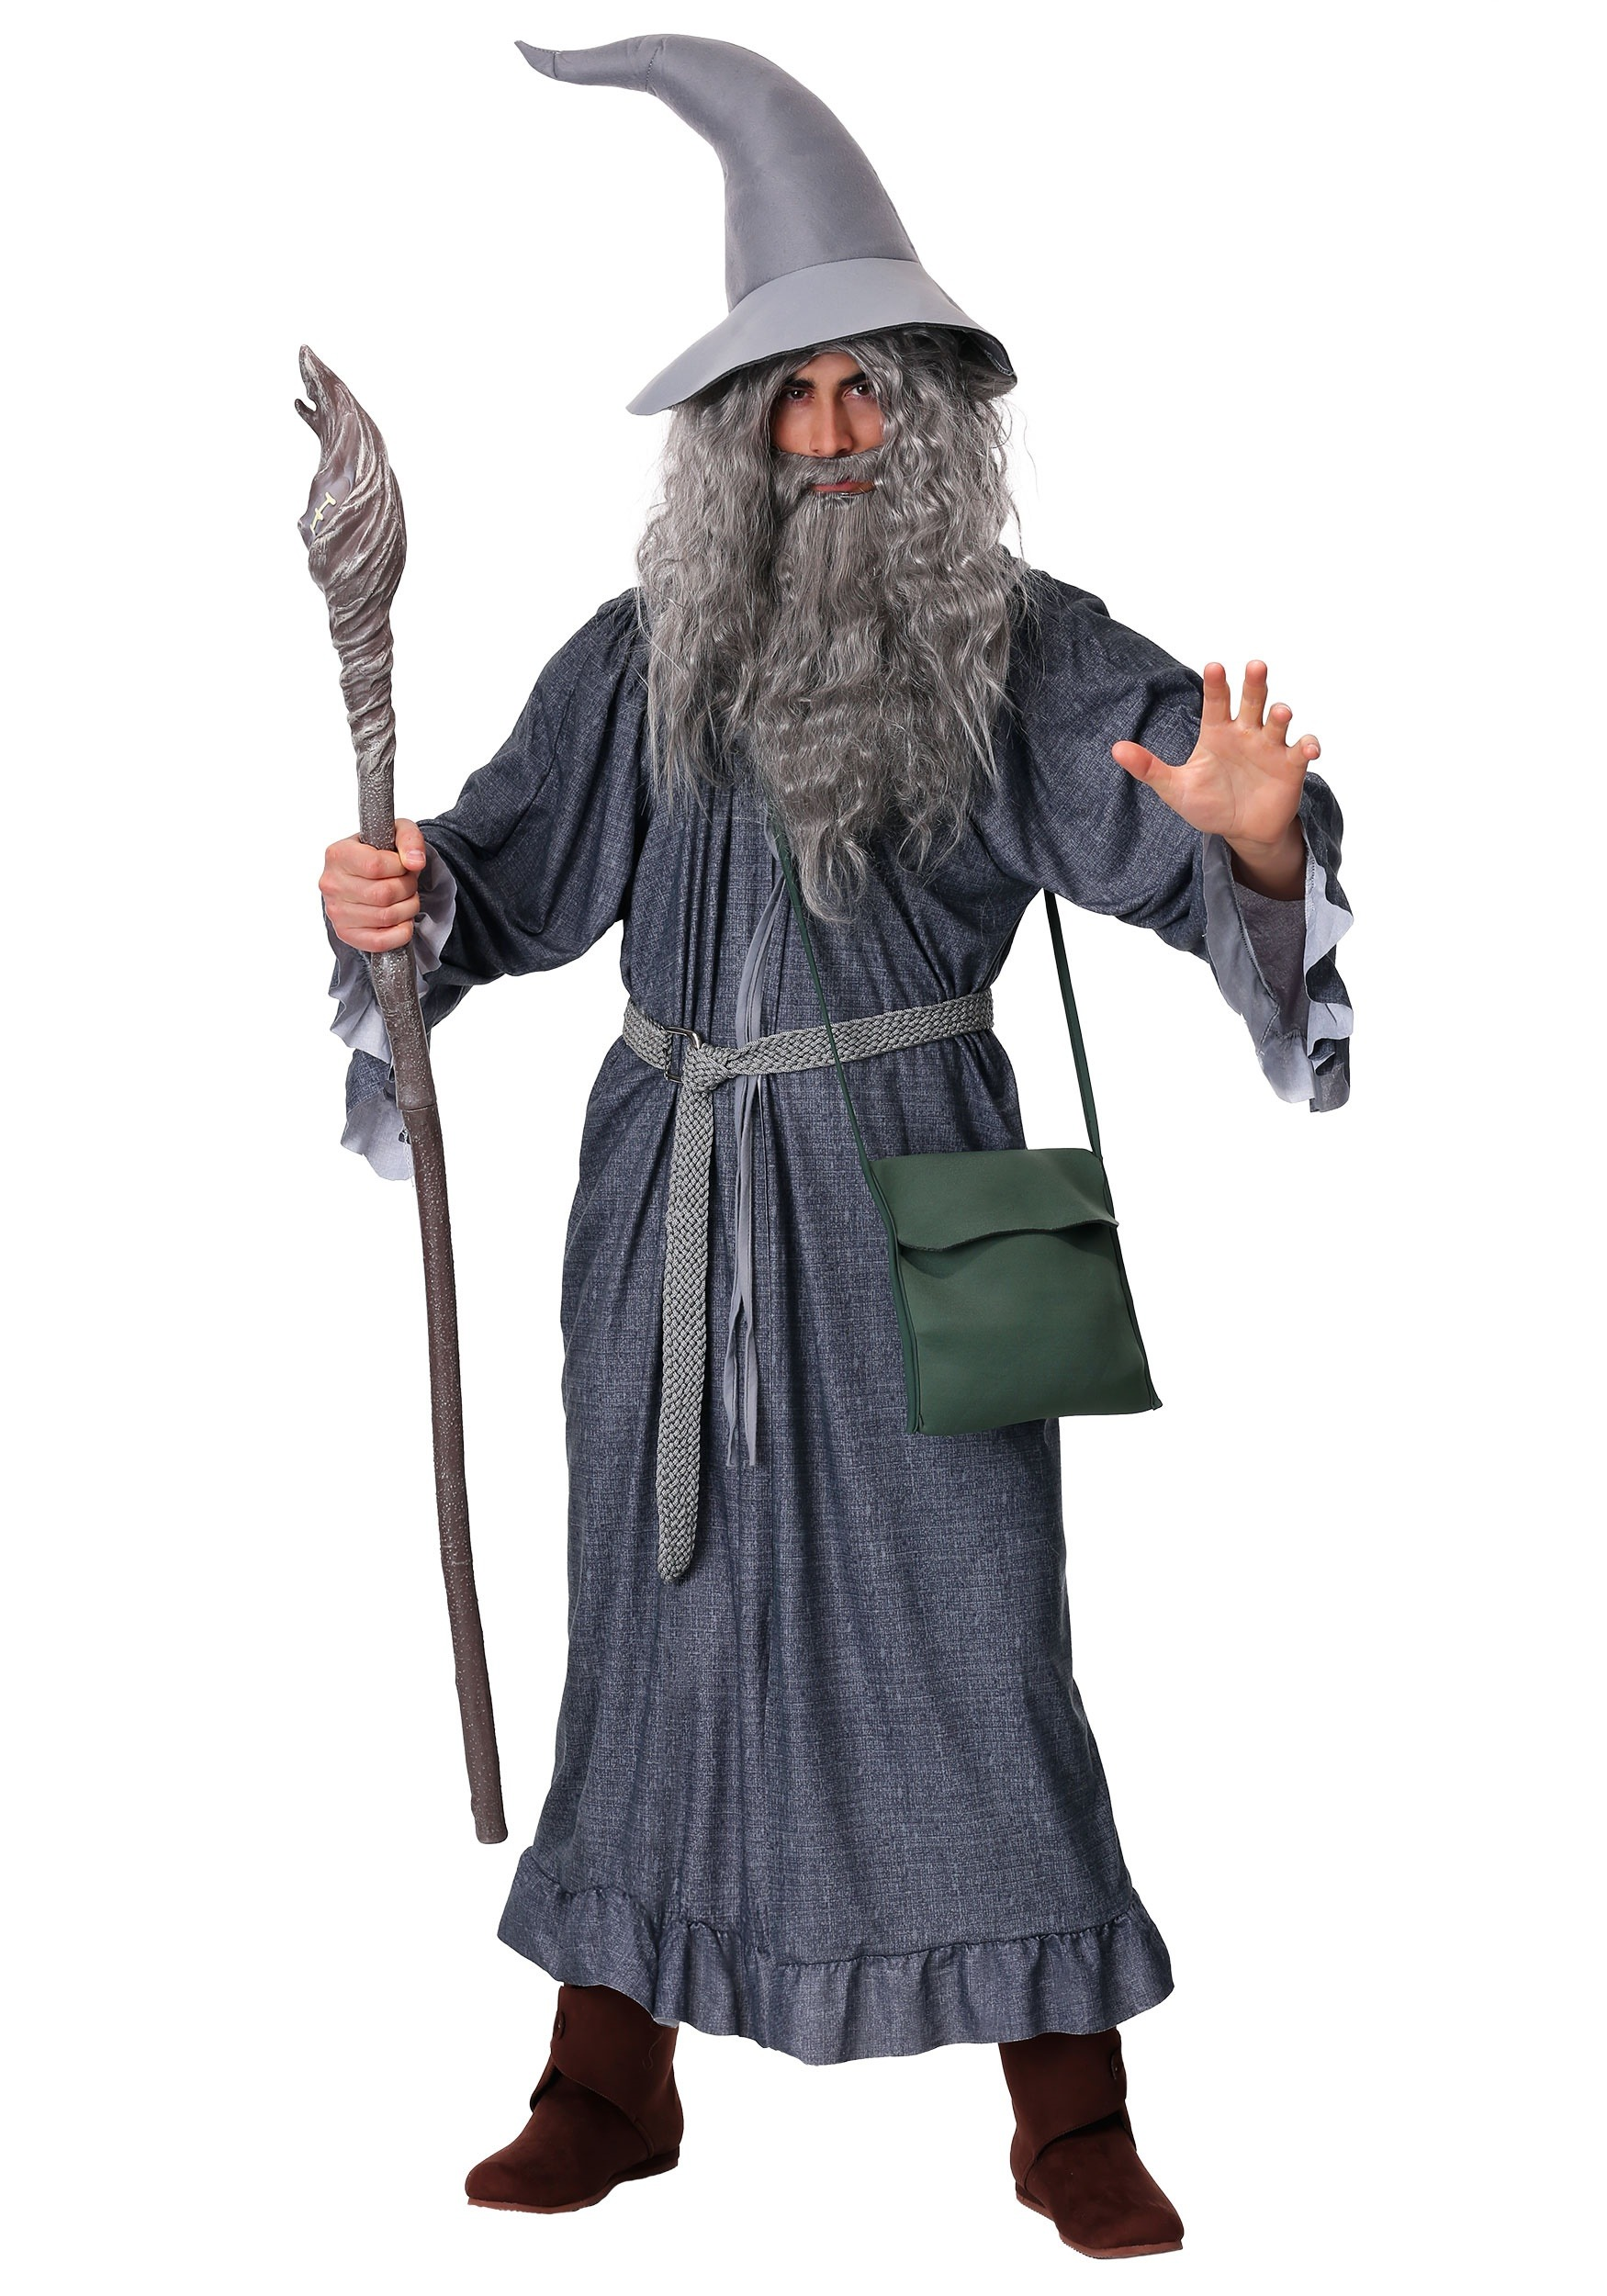 Gandalf Wizard Costume - Lord of the Rings Costume Ideas